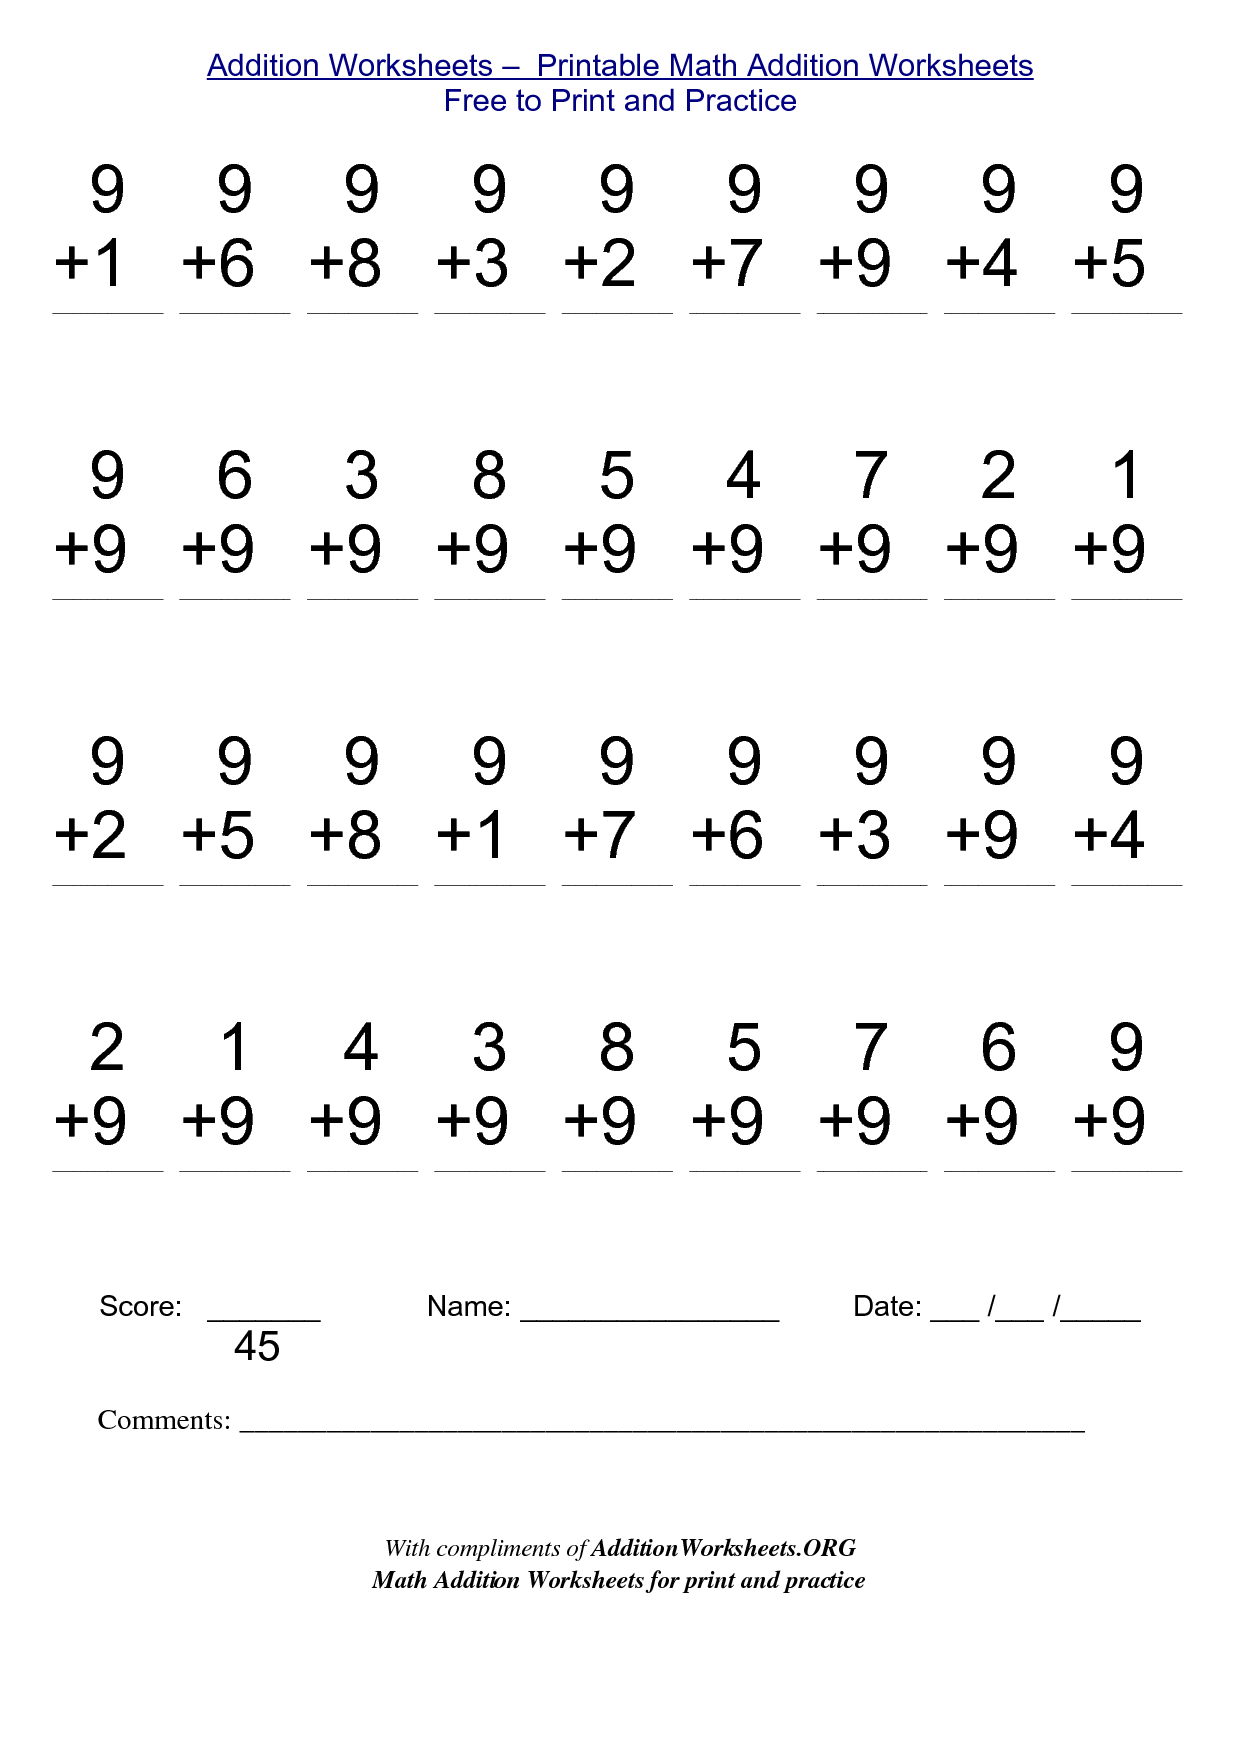 Printable Math Worksheets Addition - Reocurent